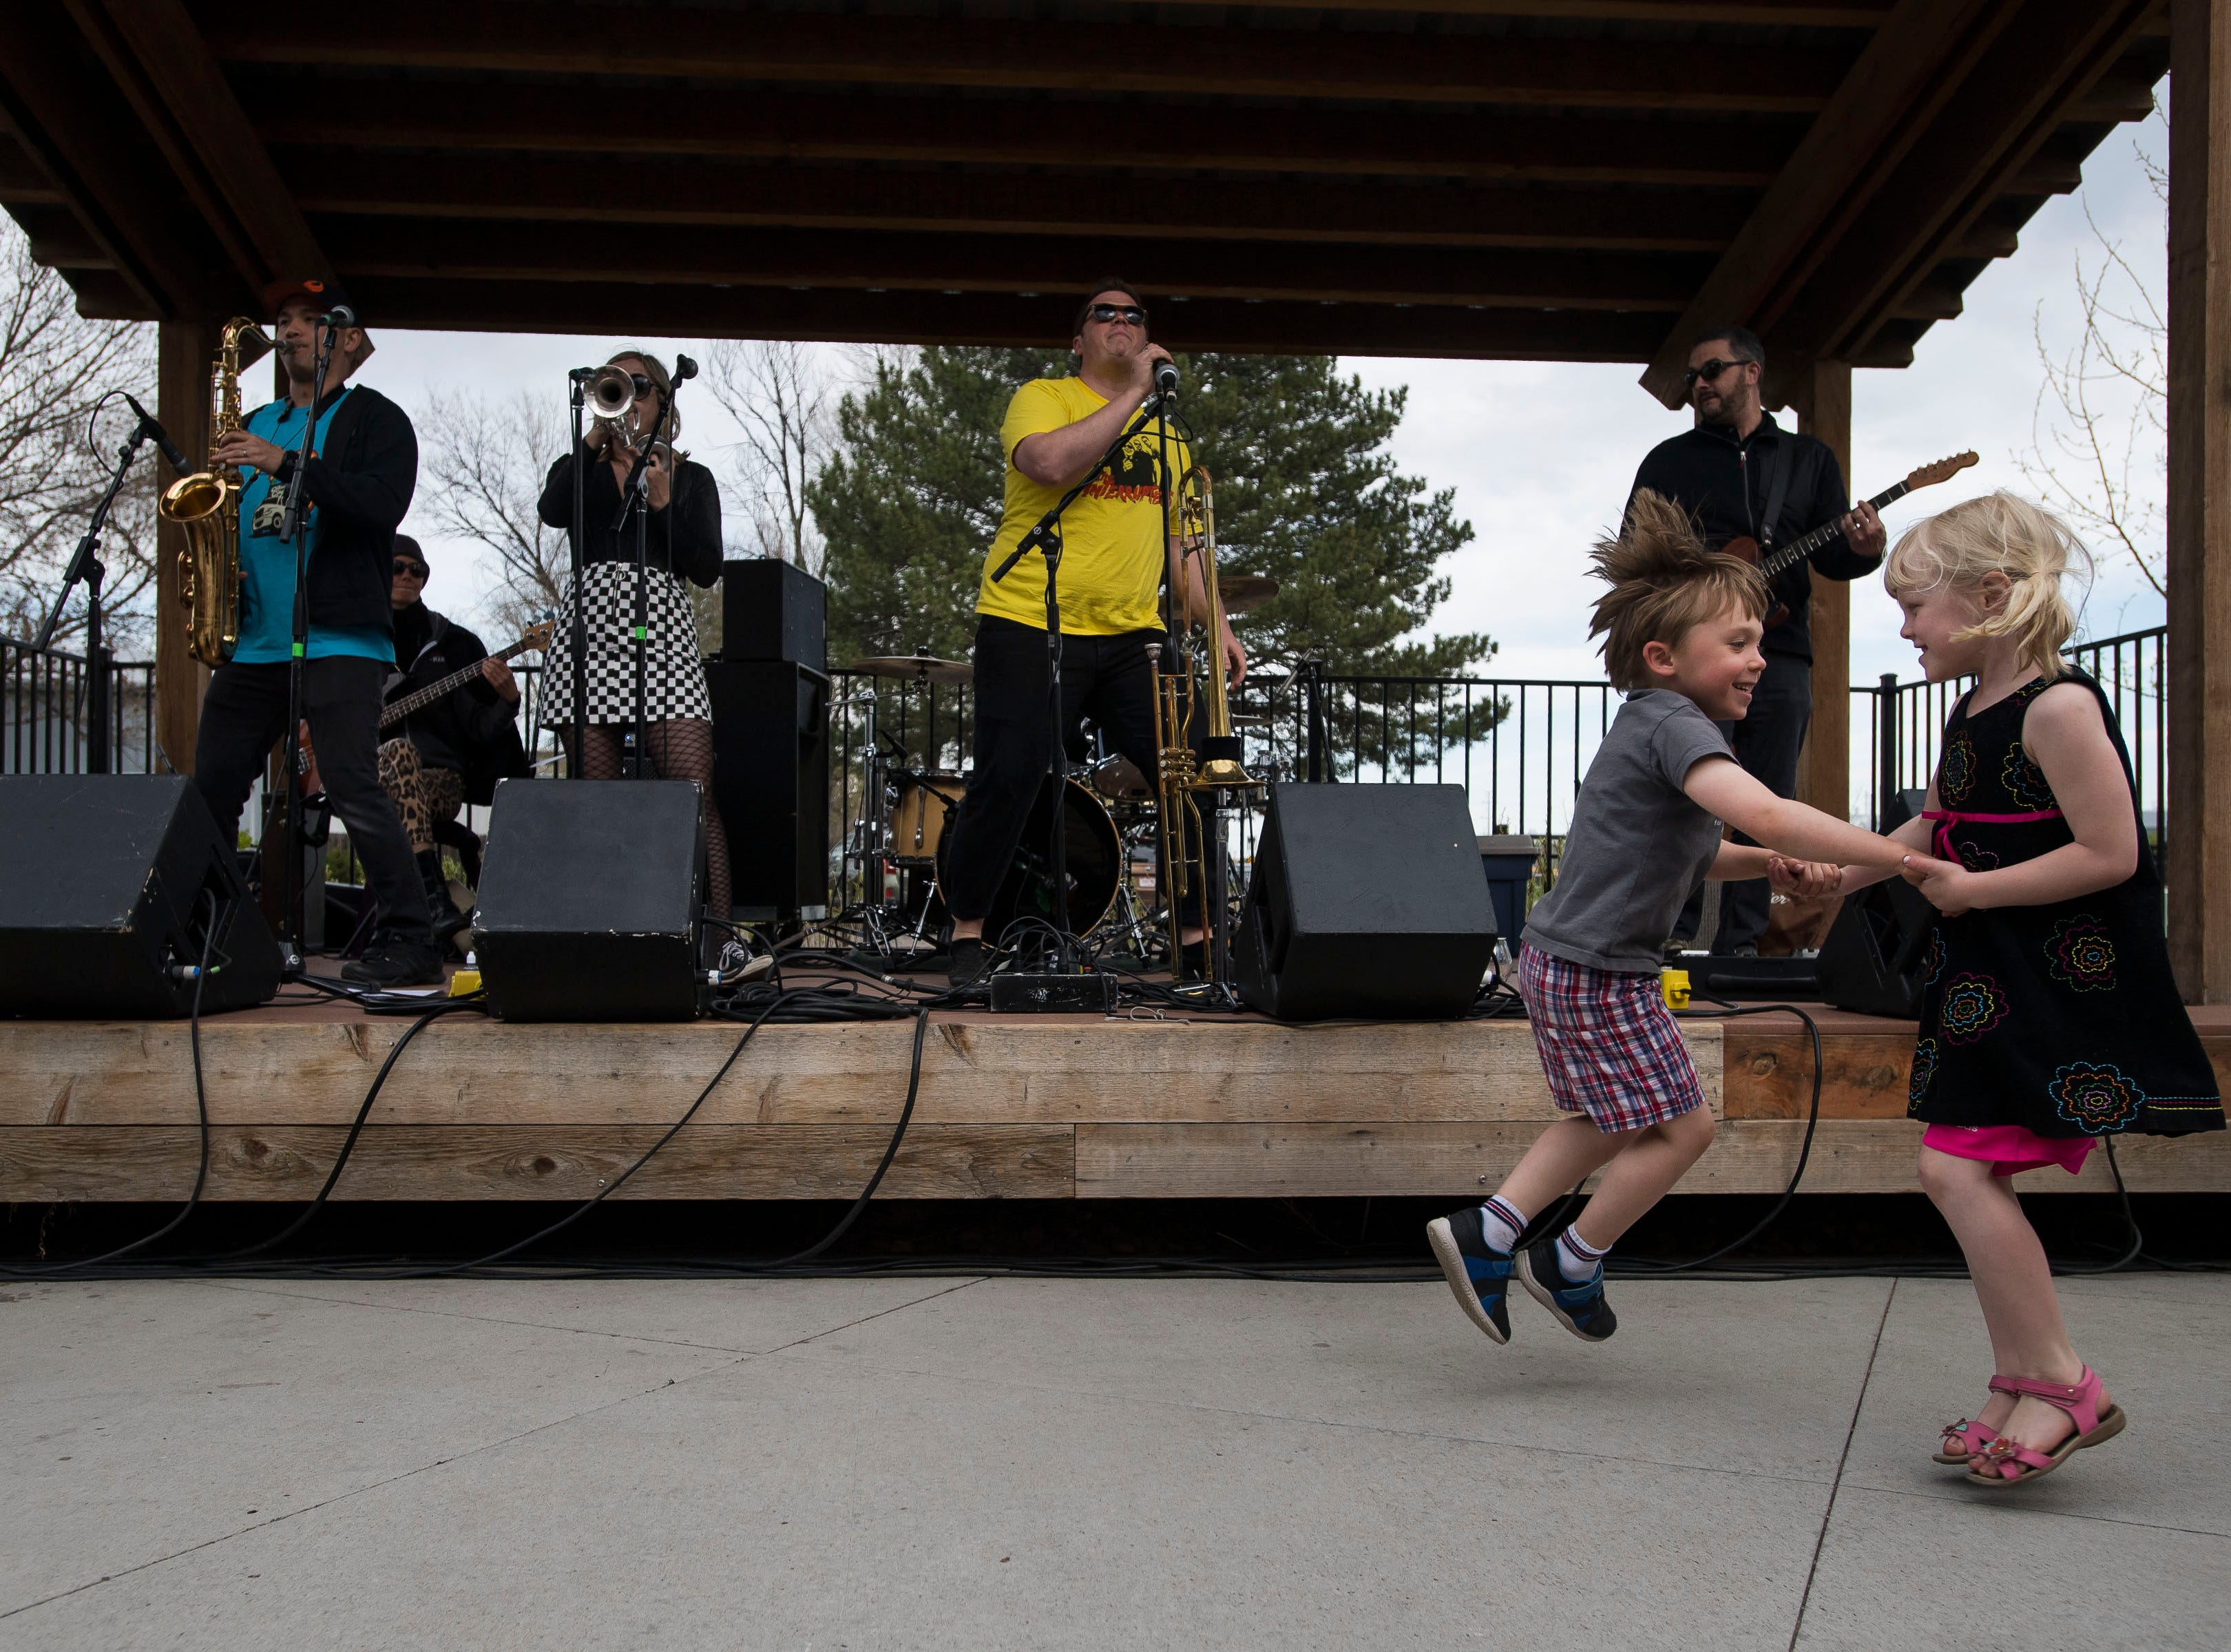 12 Cents for Martin bucks off their set at Odell Brewing Co. during the FoCoMX XI music festival on Saturday, April 27, 2019, in Fort Collins, Colo.